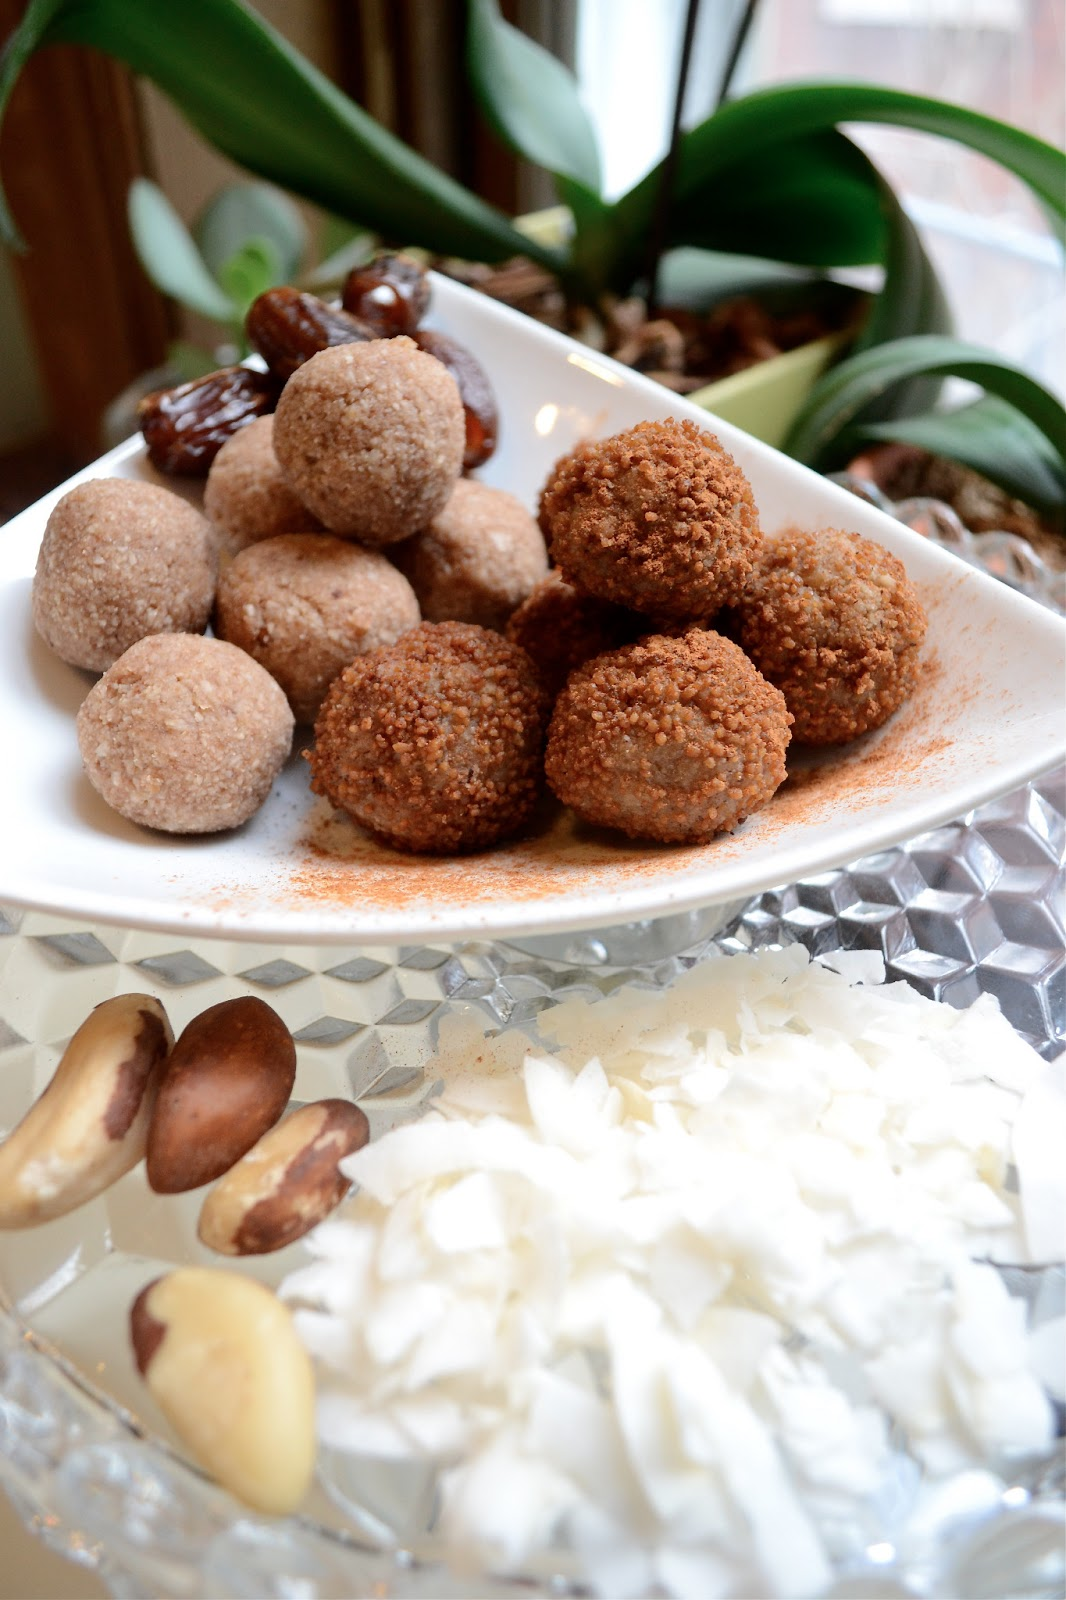 raw vegan brazil nut doughnut holes with cinnamon and sucanat, healthy dessert or snack